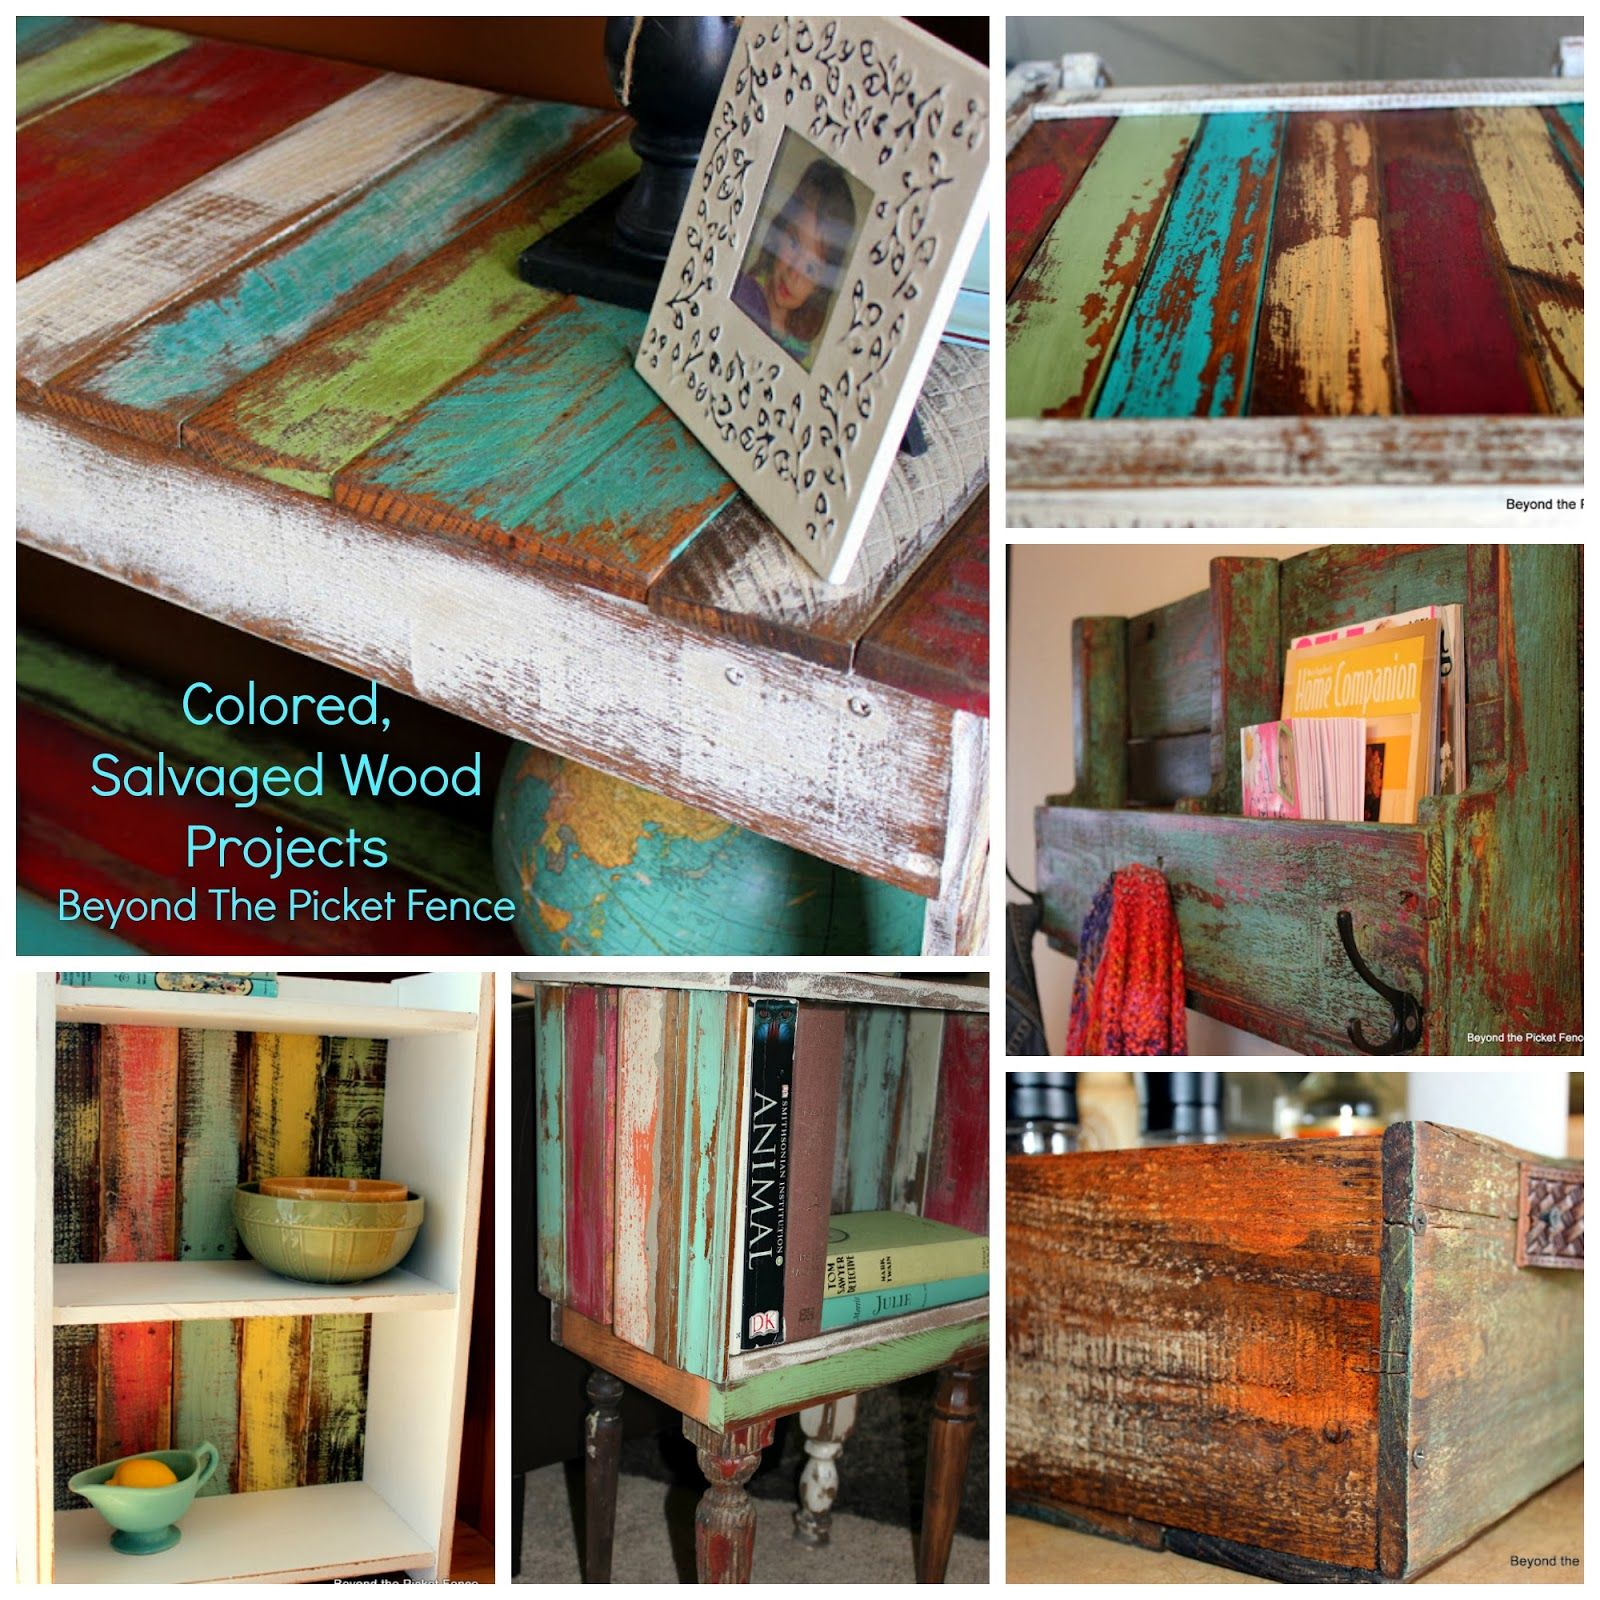 Tasty Colorful Wood Cravings Beyond The Picket Fence